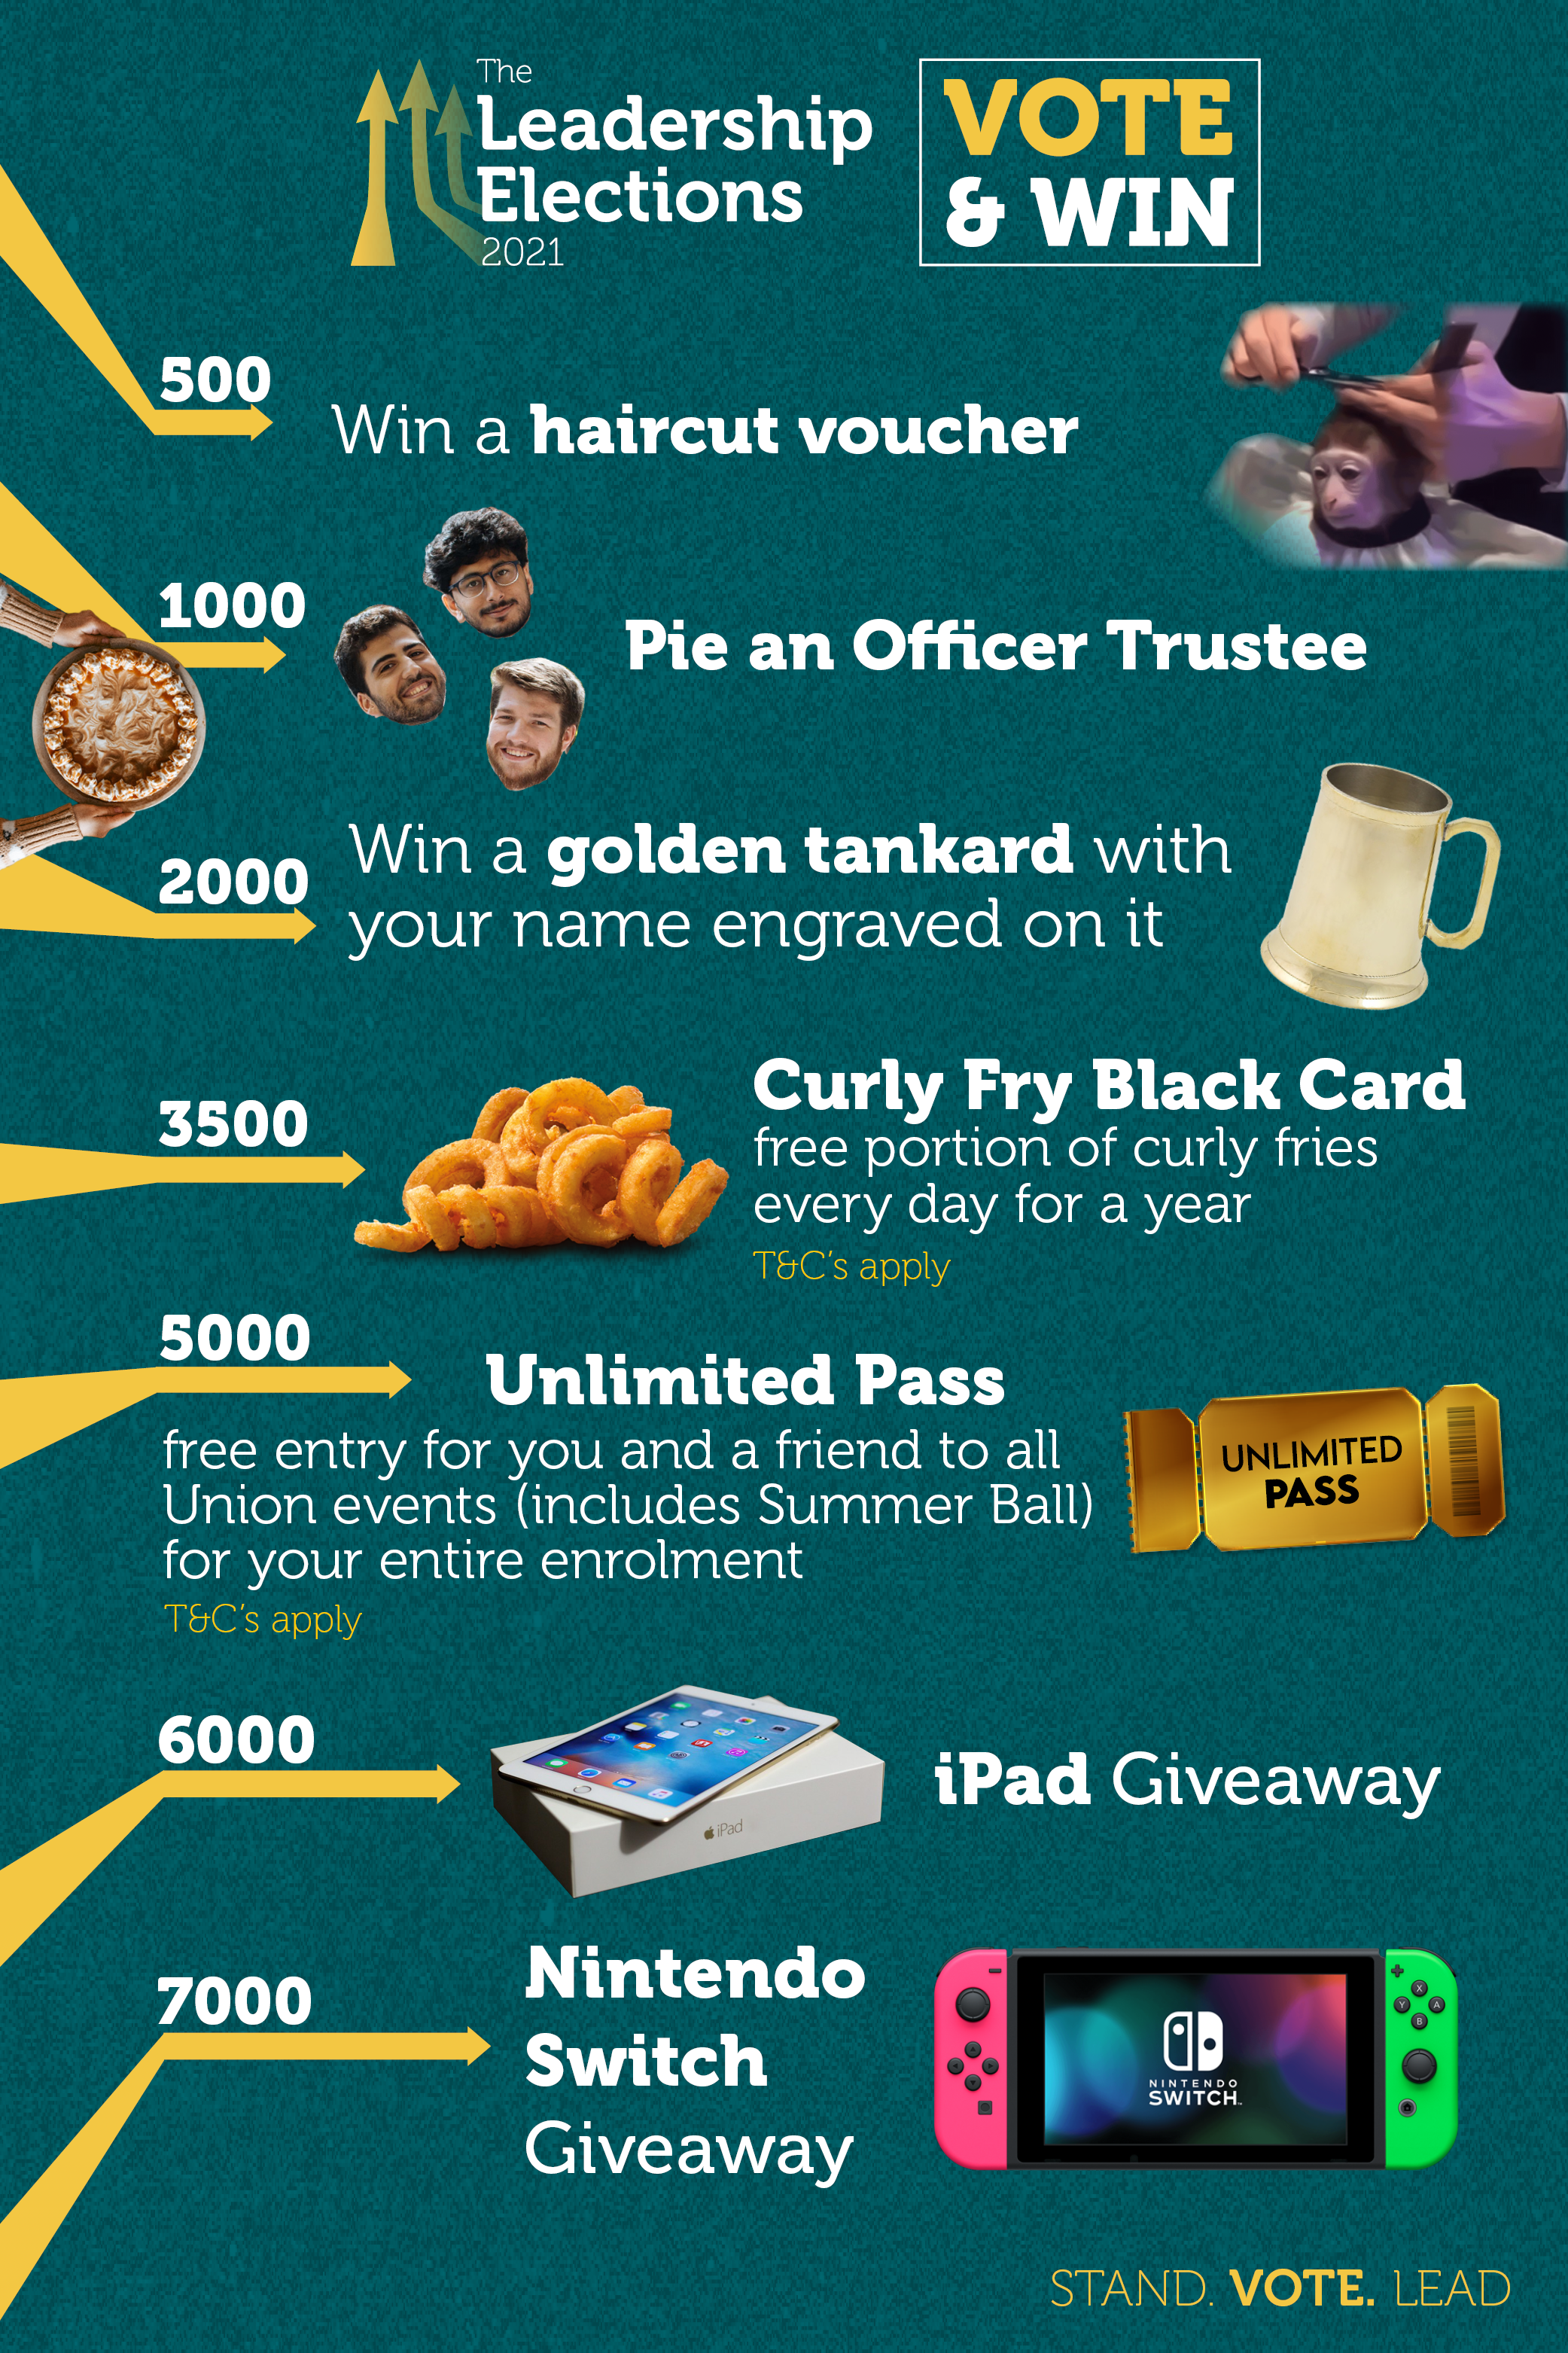 Voting incentives